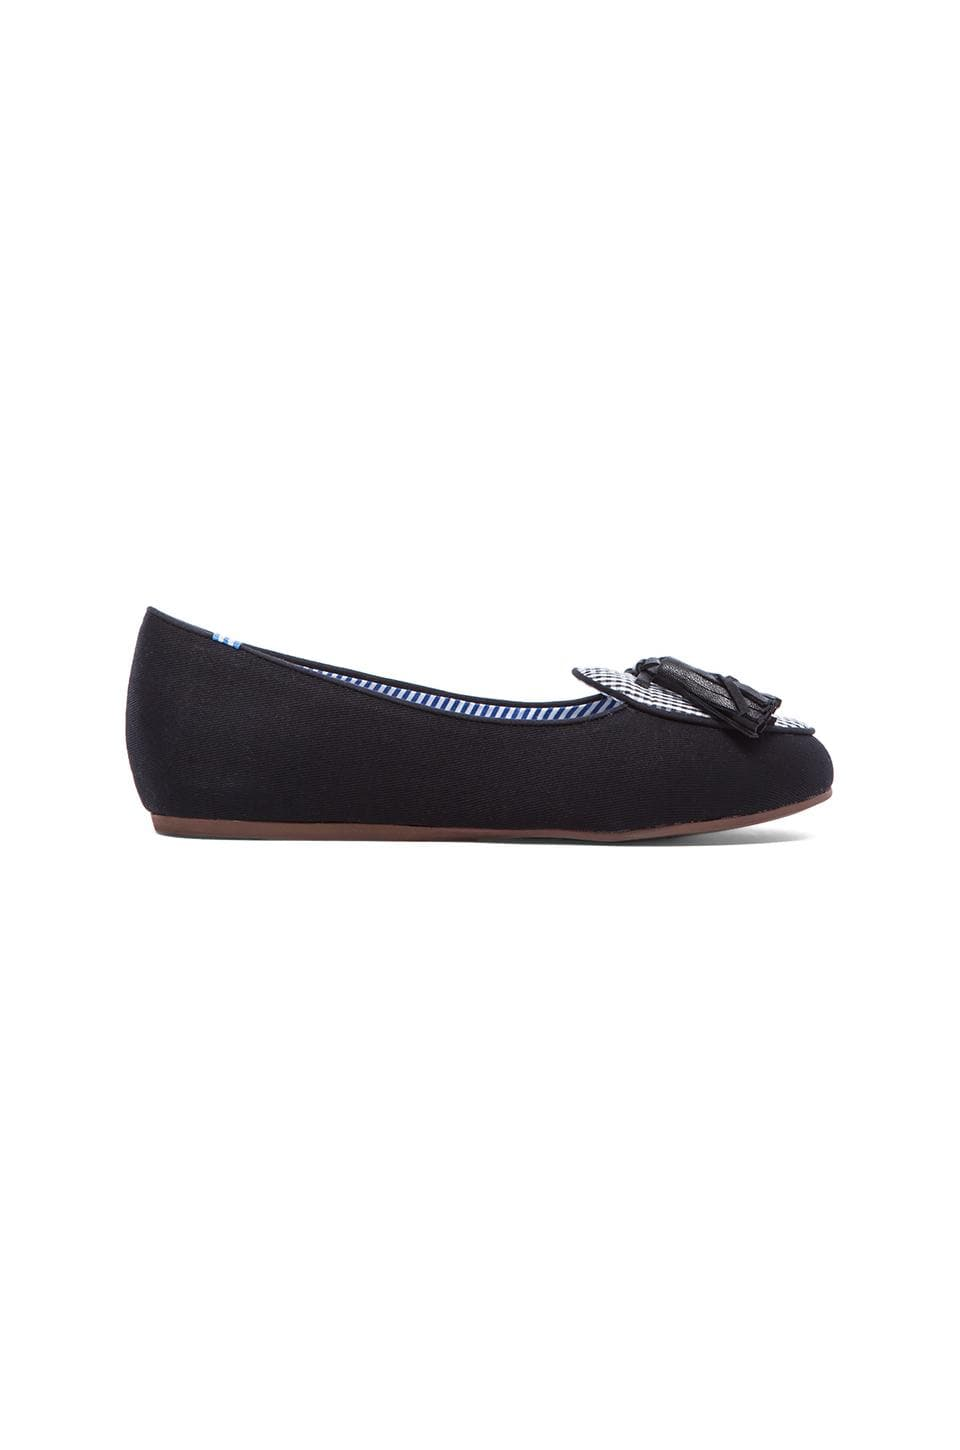 Charles Philip Shanghai Olimpia Loafer in Black Gingham & Black